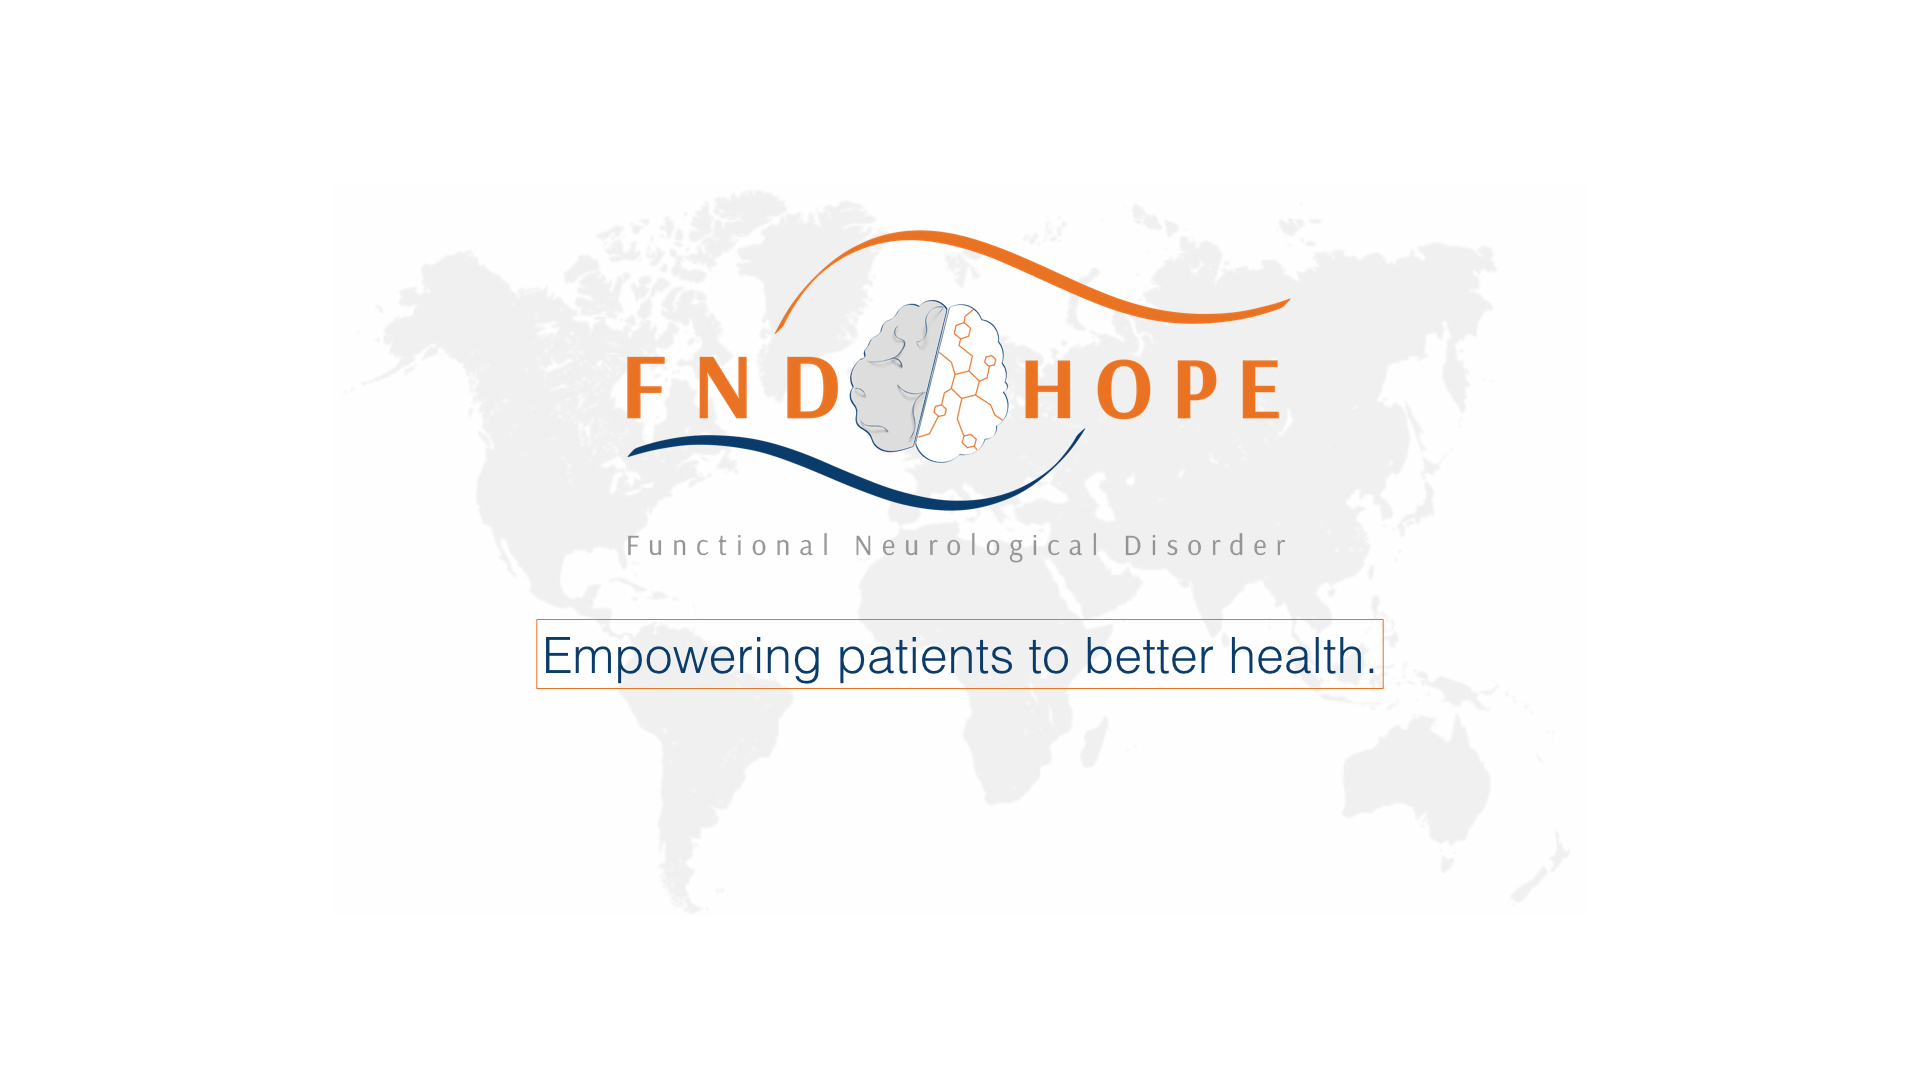 FND Hope International